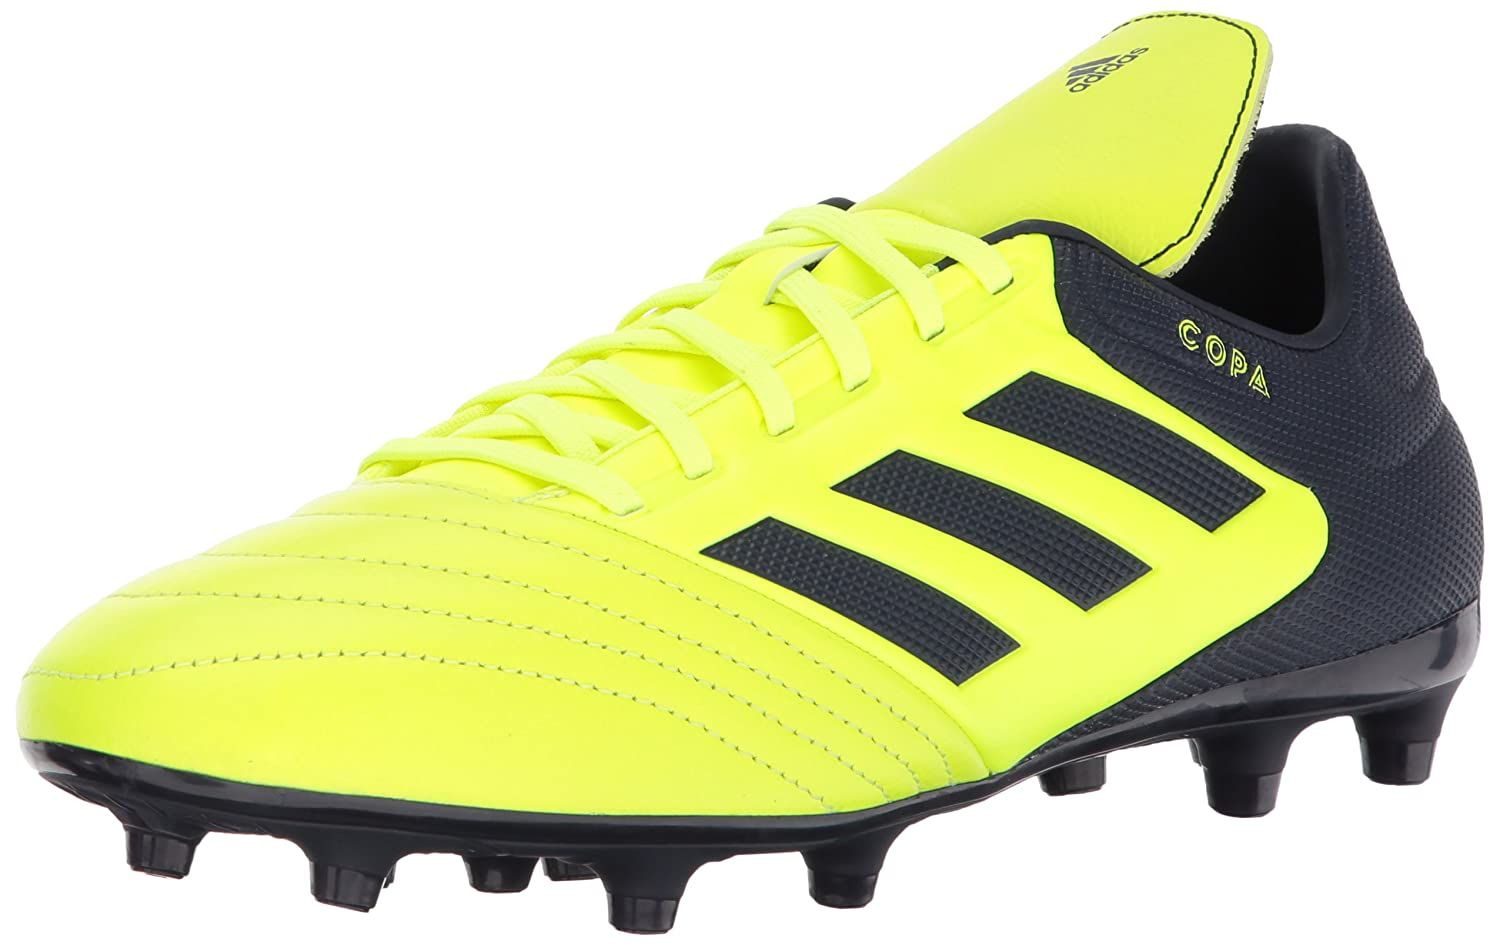 adidas Men's Copa 17.3 Firm Ground Cleats Soccer Shoe